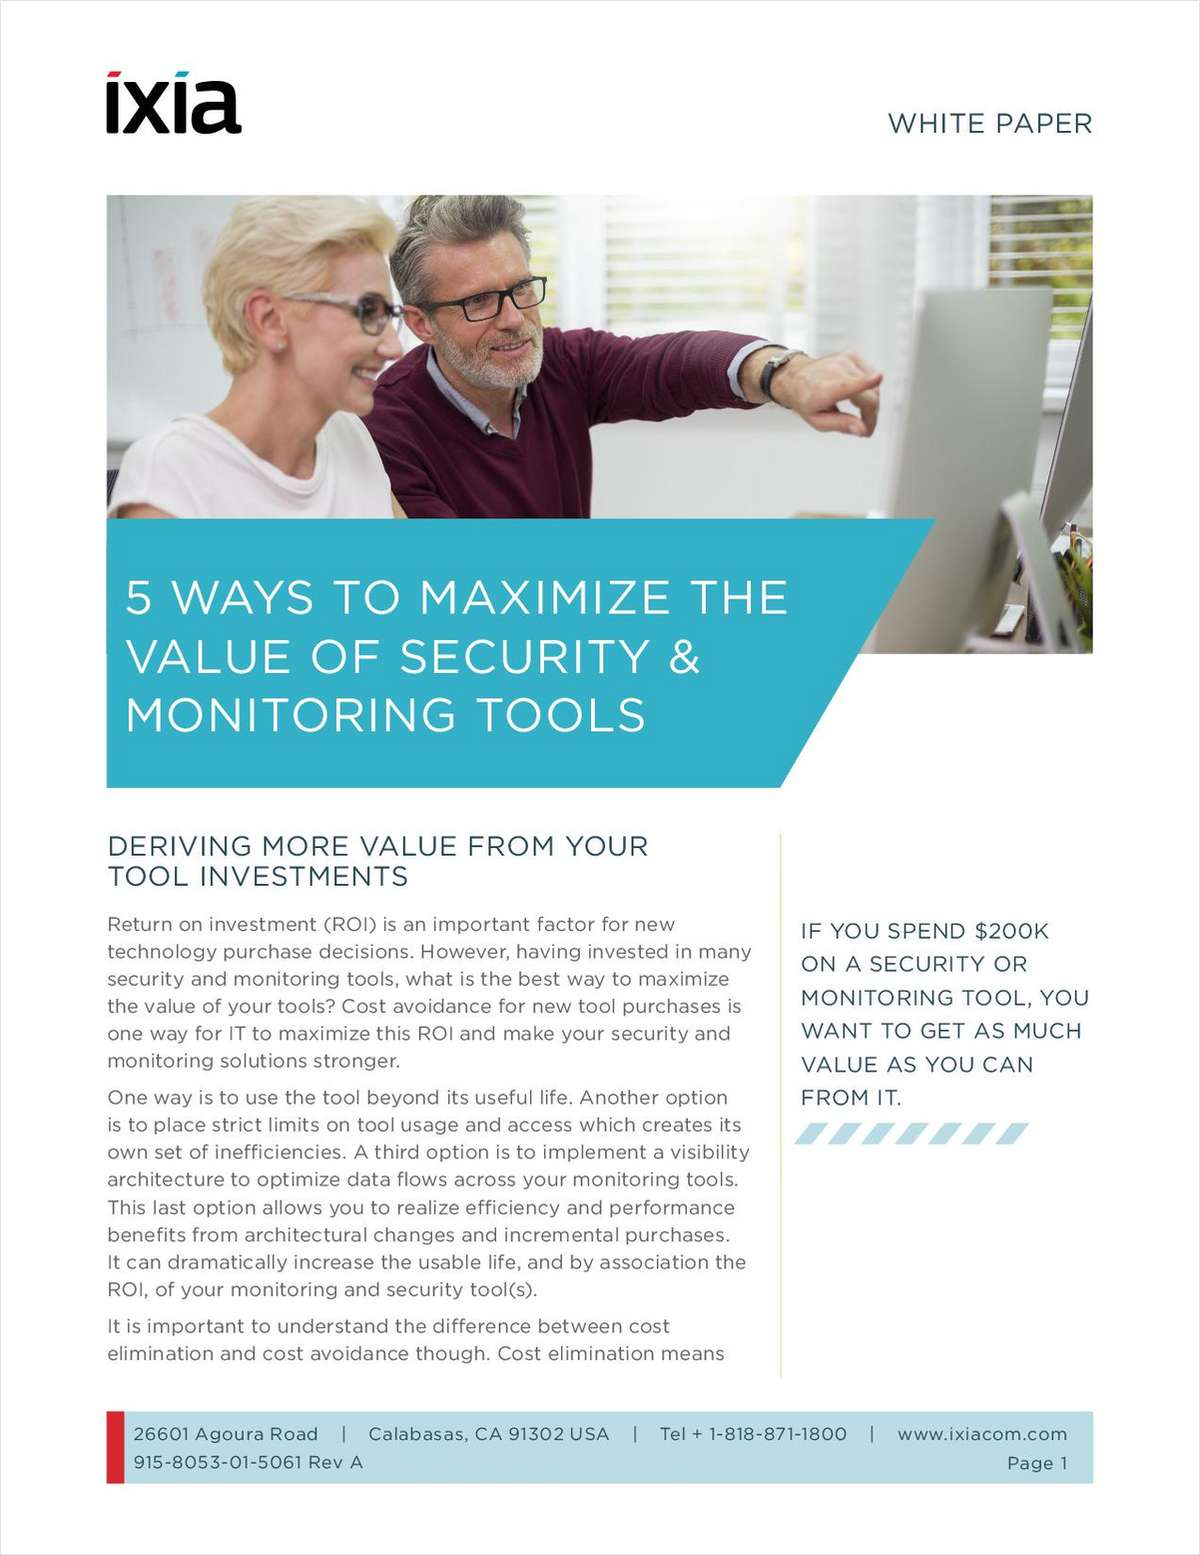 5 Ways to Maximize the Value of Security and Network Monitoring Tools